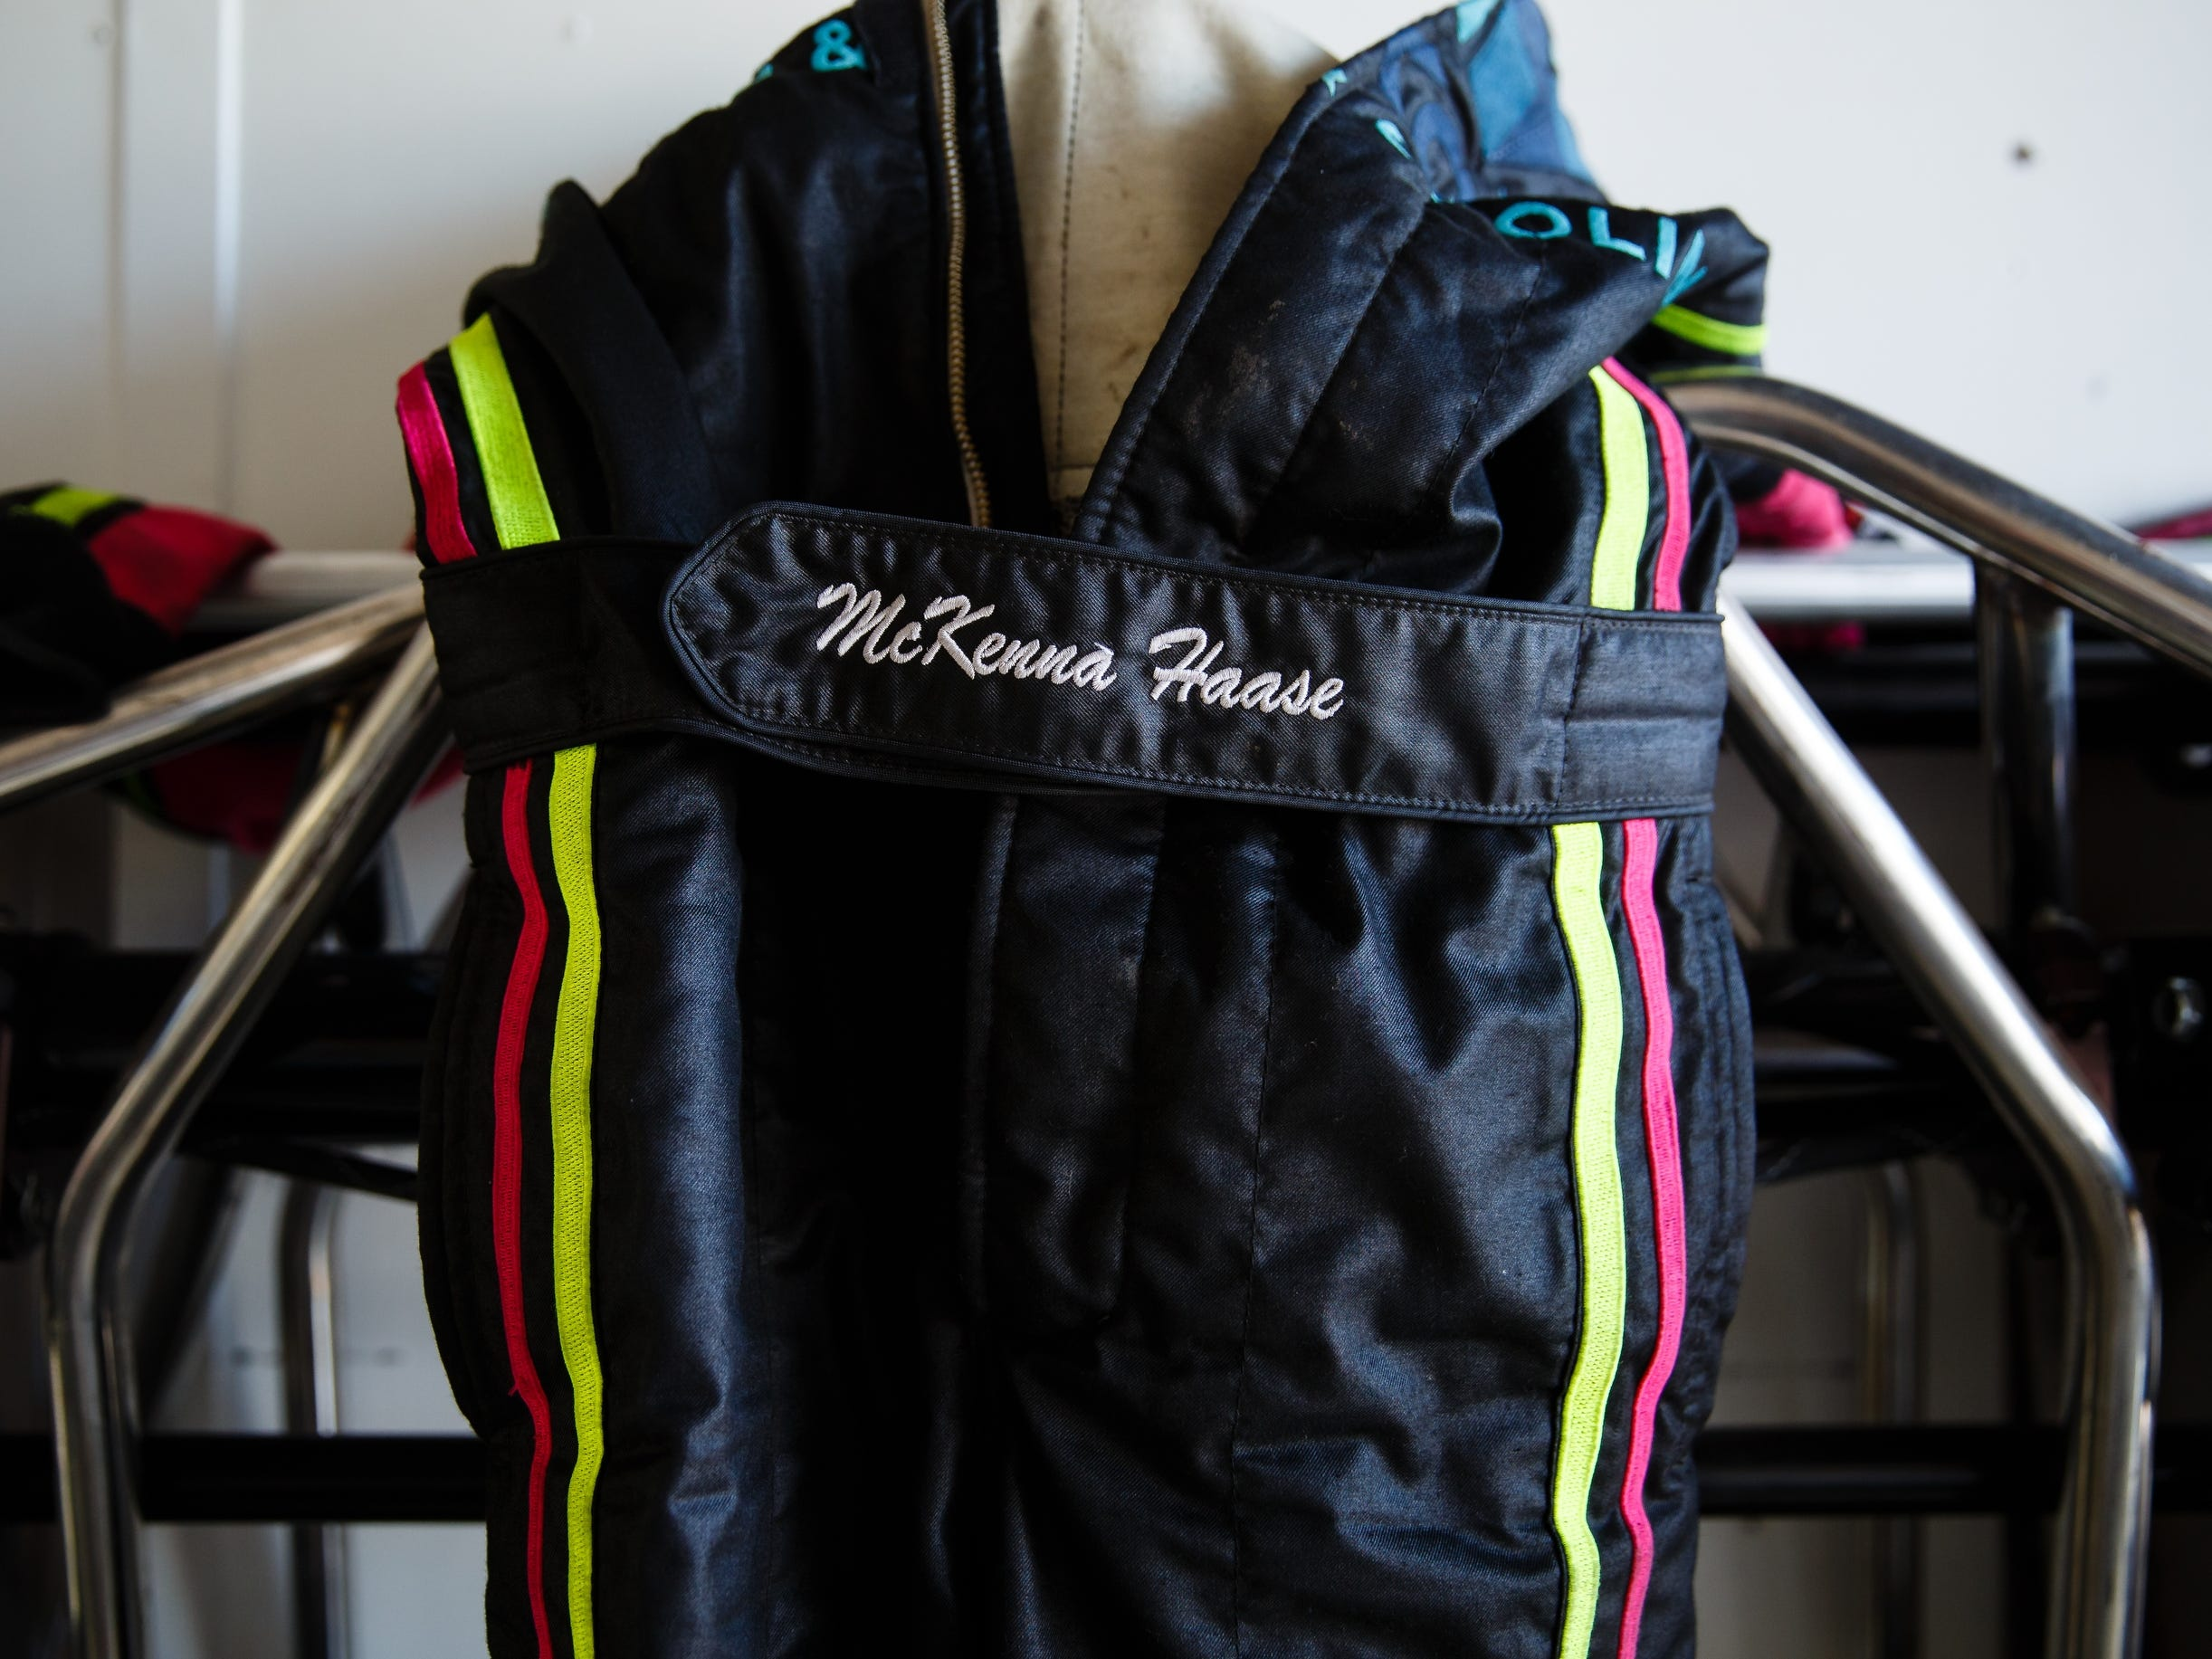 McKenna Haase's fire suit hangs in her trailer before her race on Saturday, July 14, 2018, in Knoxville.